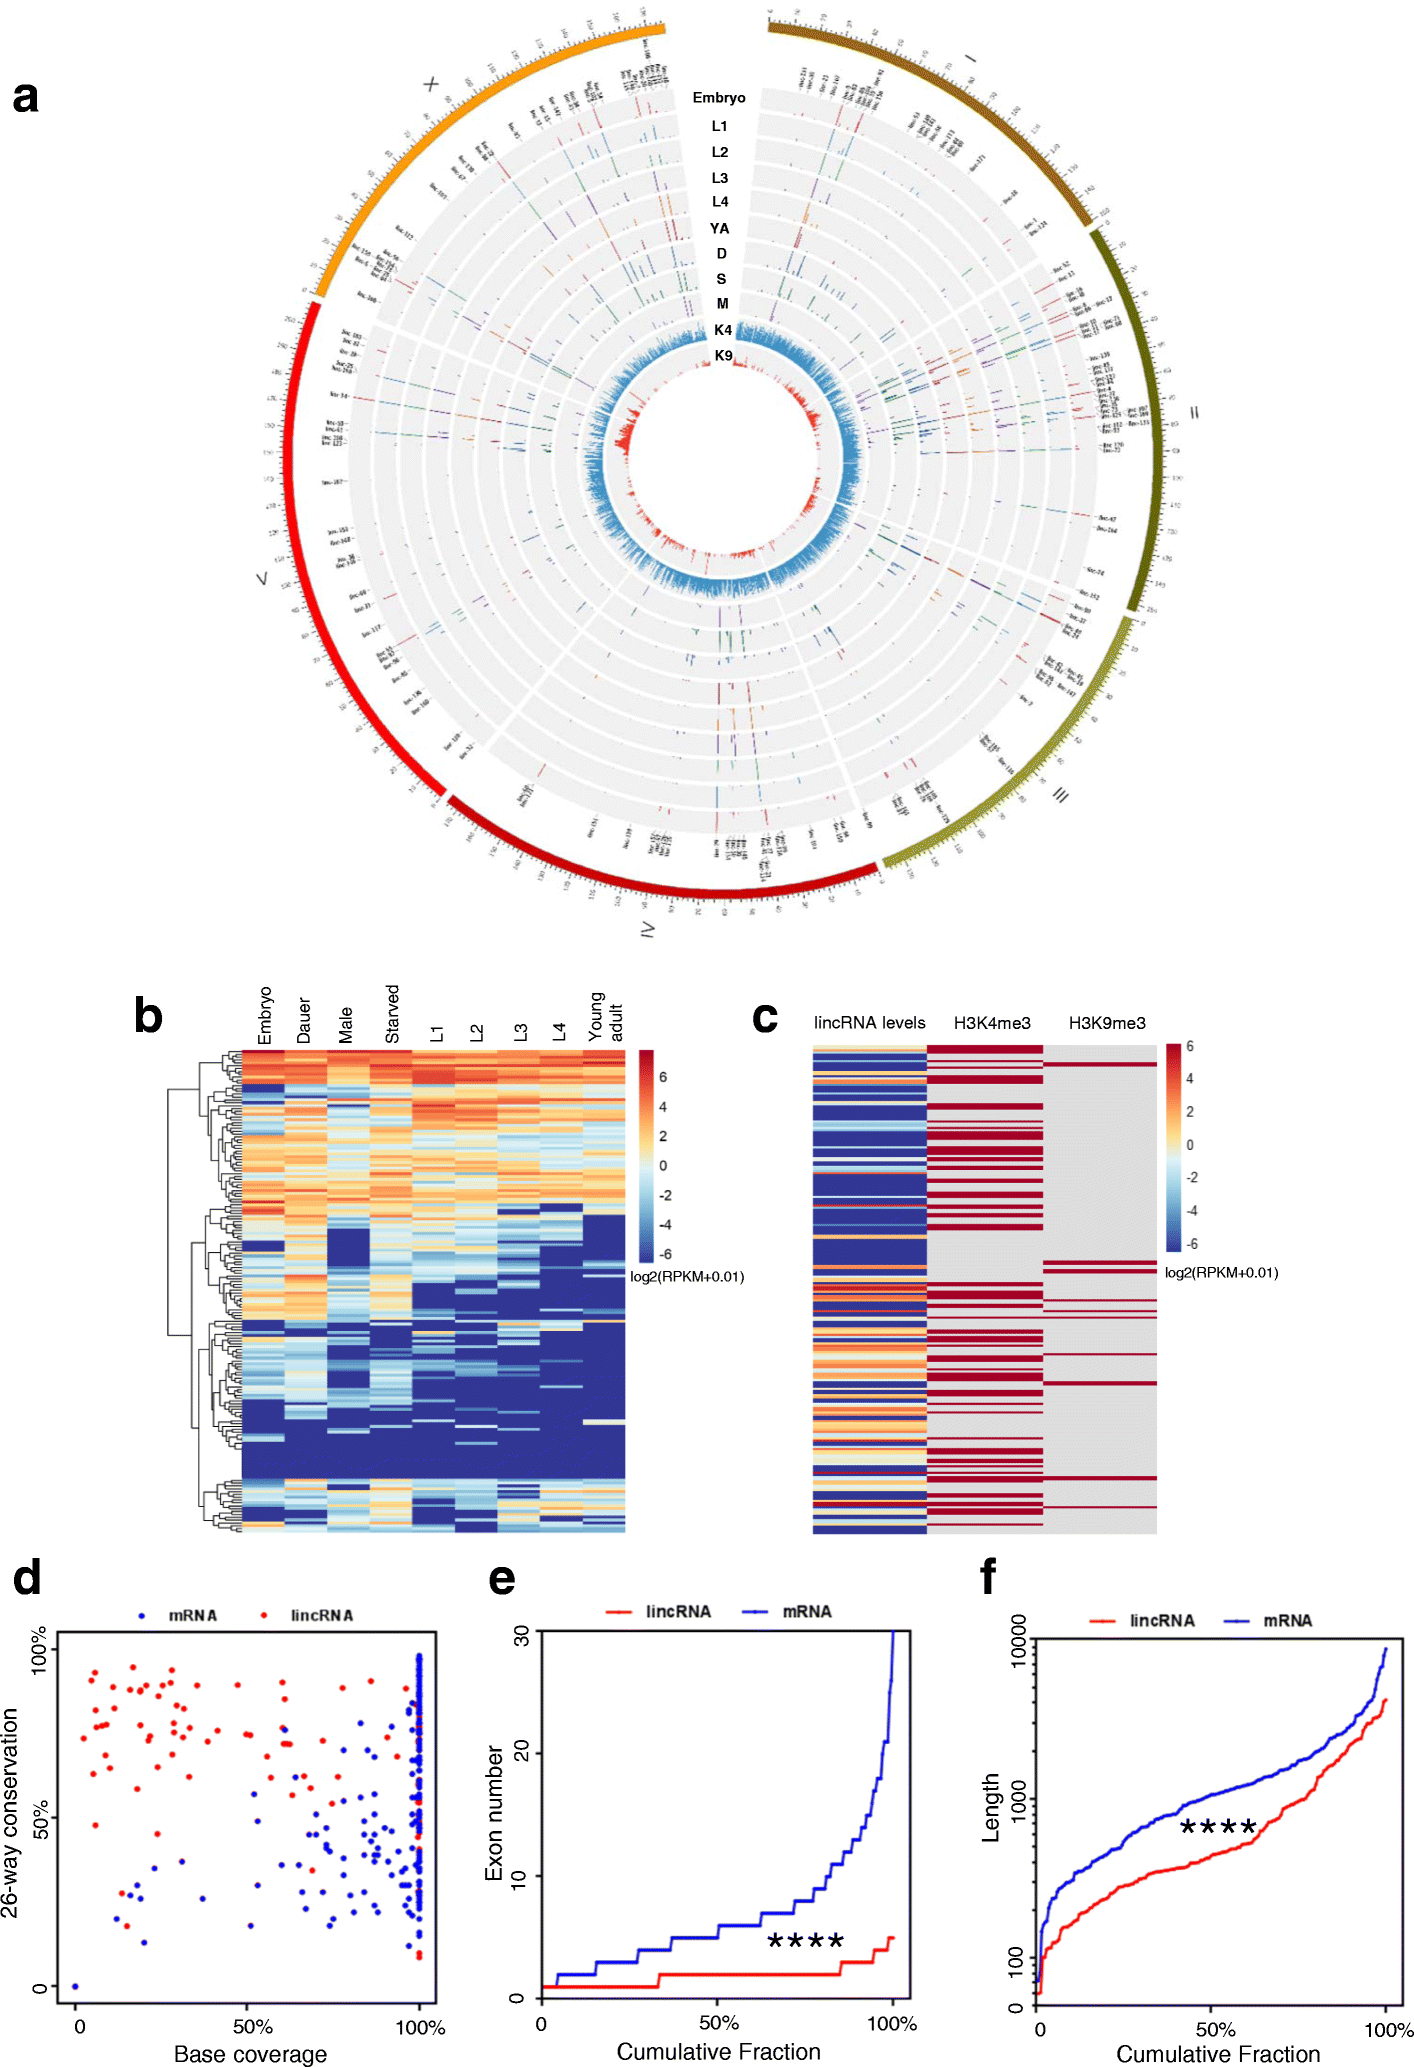 Systematic Evaluation Of C. Elegans LincRNAs With CRISPR